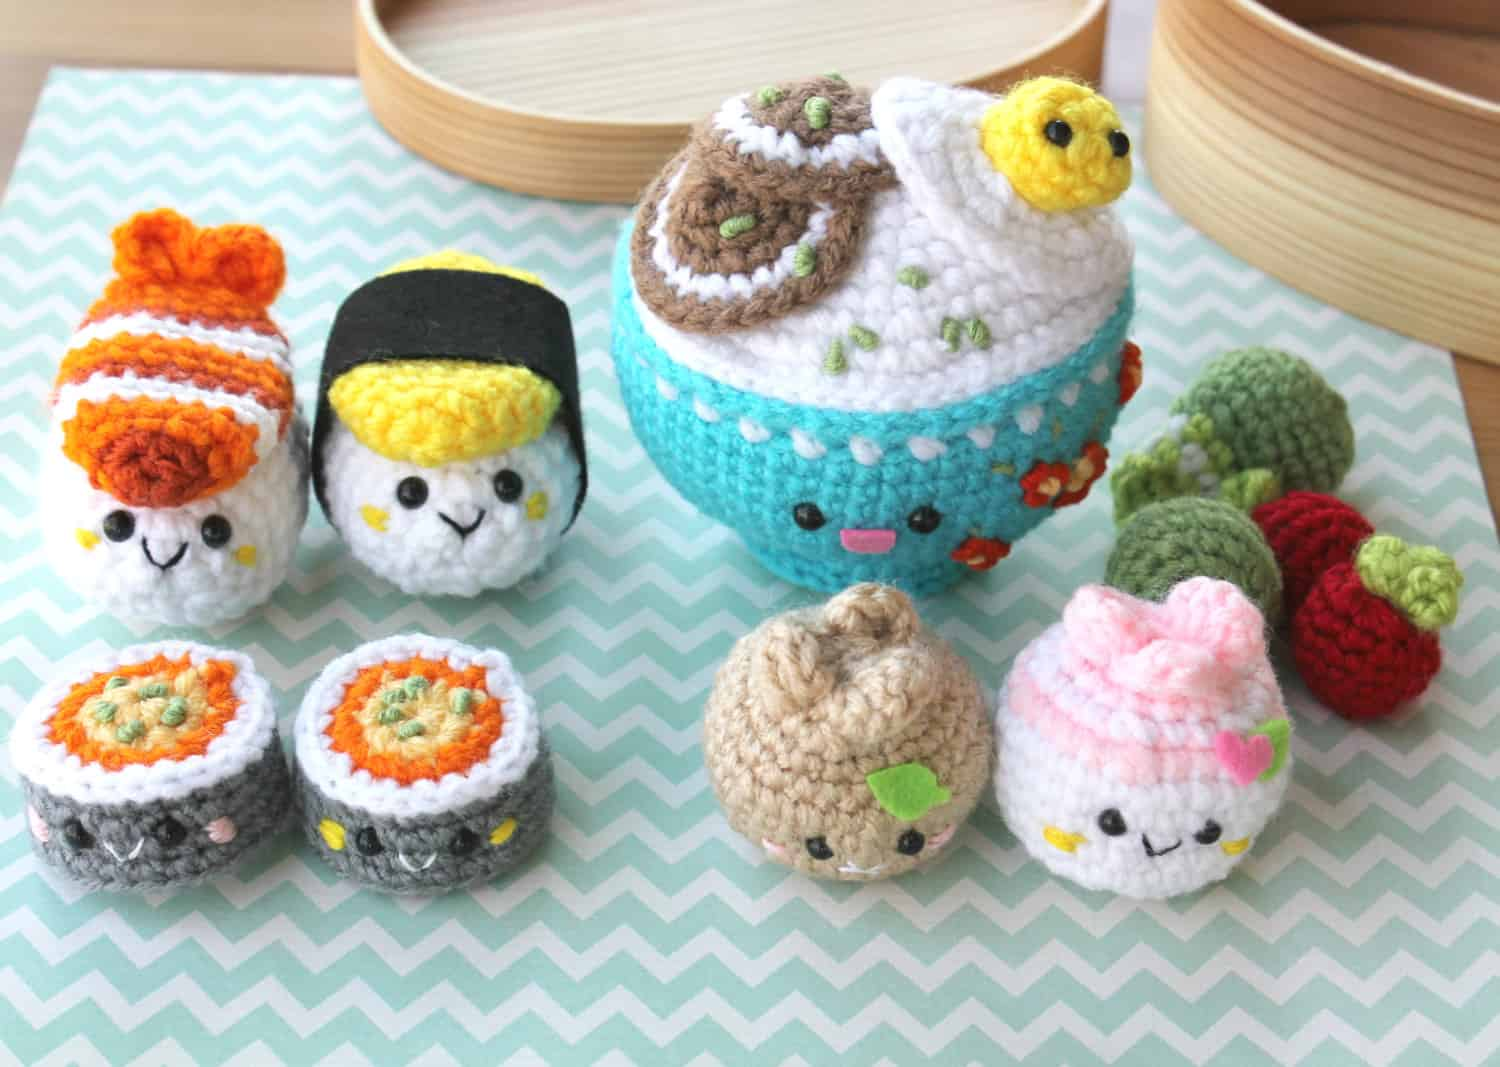 Crocheted sushi and dumplings